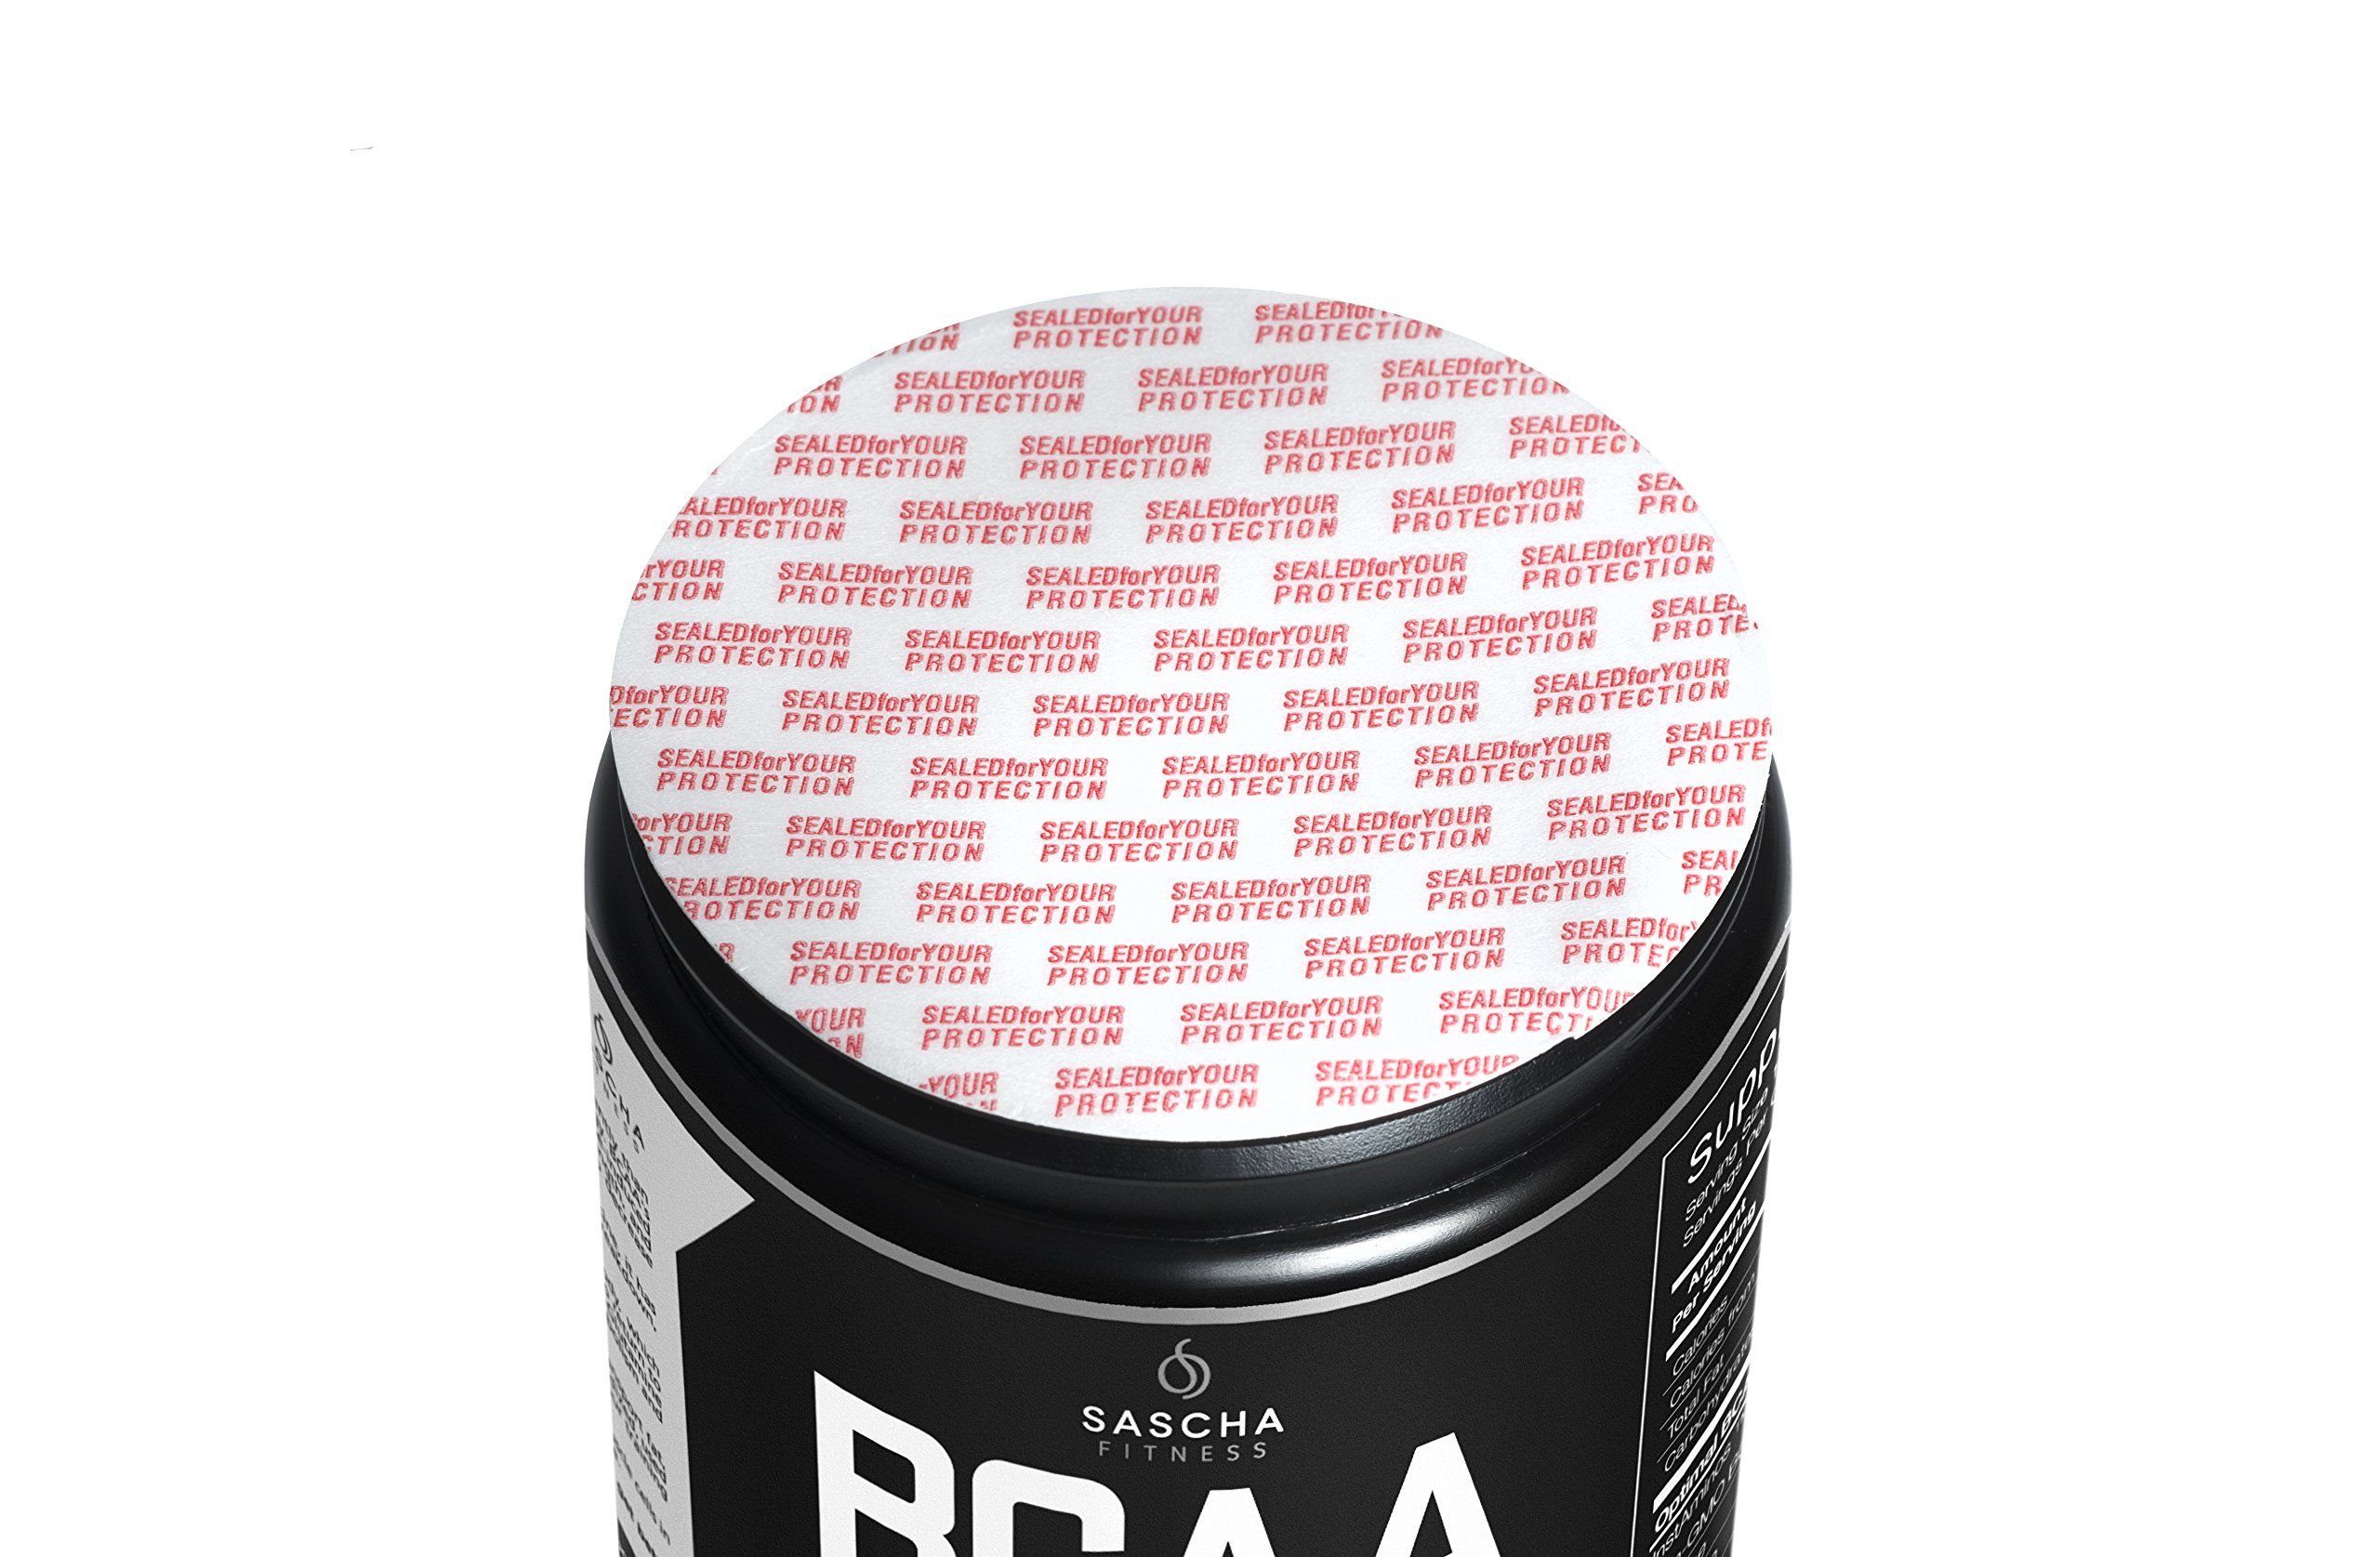 Sascha Fitness BCAA 4:1:1 + Glutamine, HMB, L-Carnitine, HICA | Powerful and Instant Powder Blend with Branched Chain Amino Acids (BCAAs) for Pre, Intra and Post-Workout | Natural Grape Flavor, 350g by SASCHA FITNESS (Image #1)